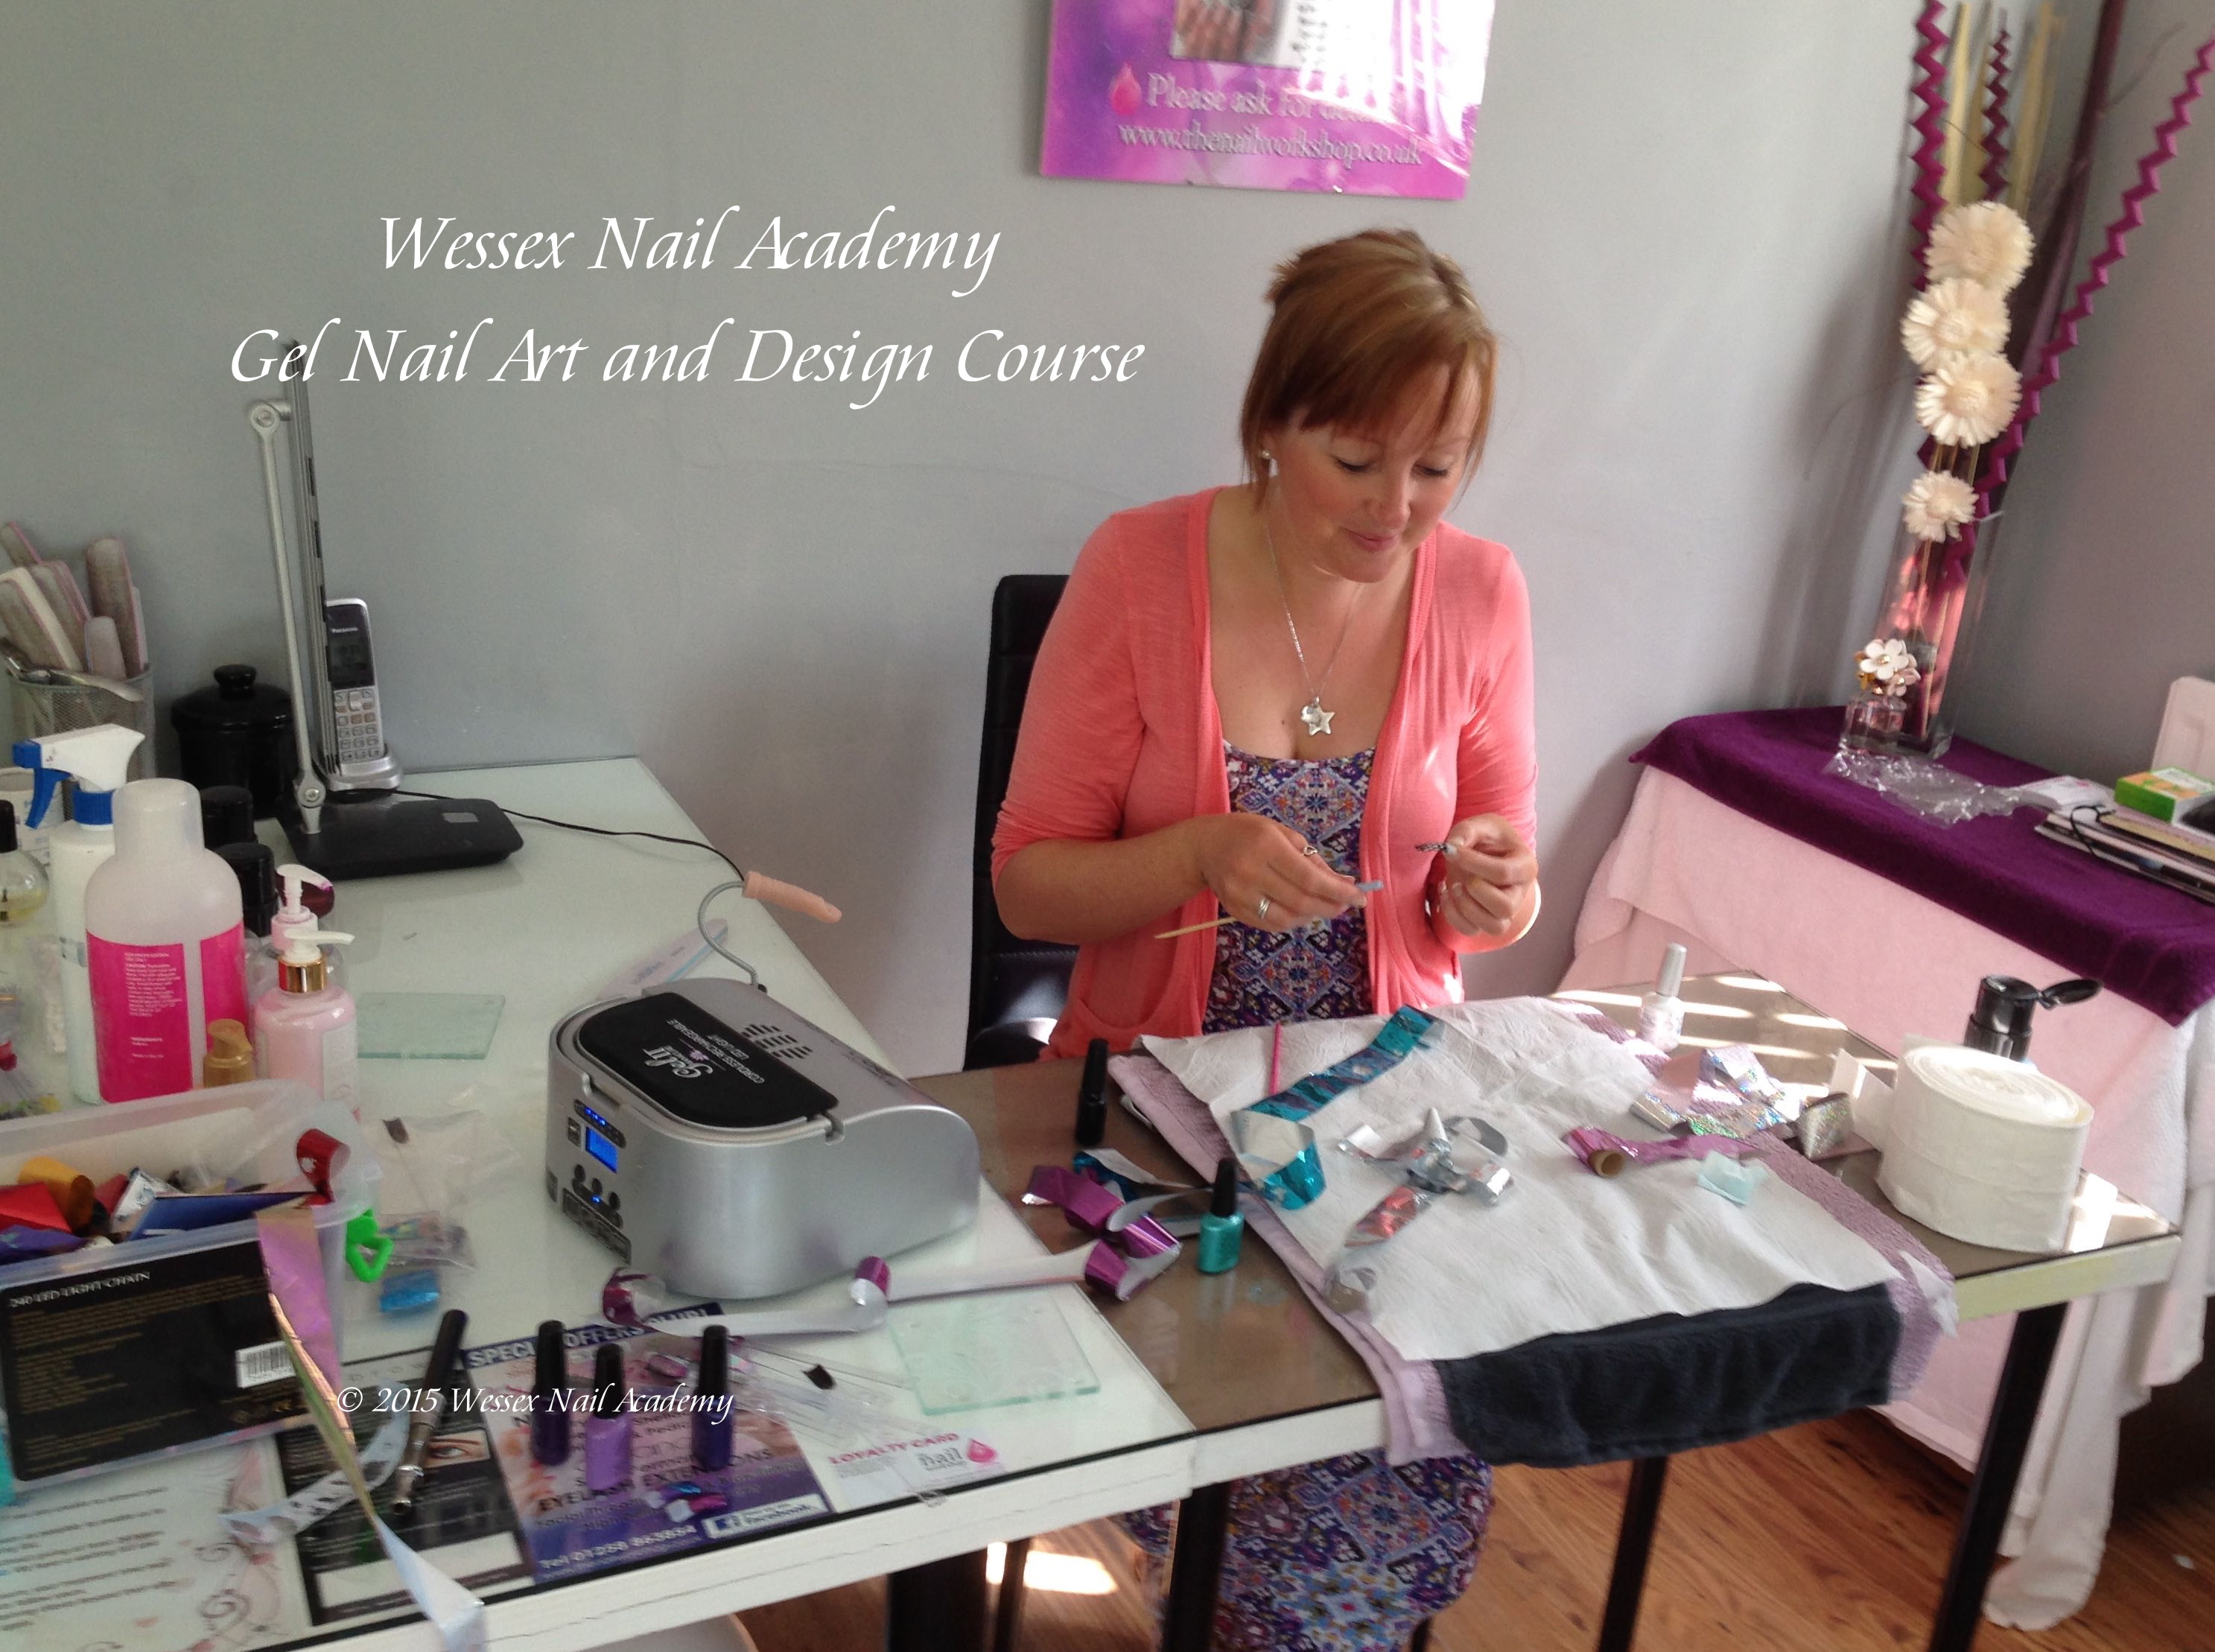 Nail Art Course, Nail extension training, nail training course, Wessex Nail Academy Okeford Fitzpaine, Dorset